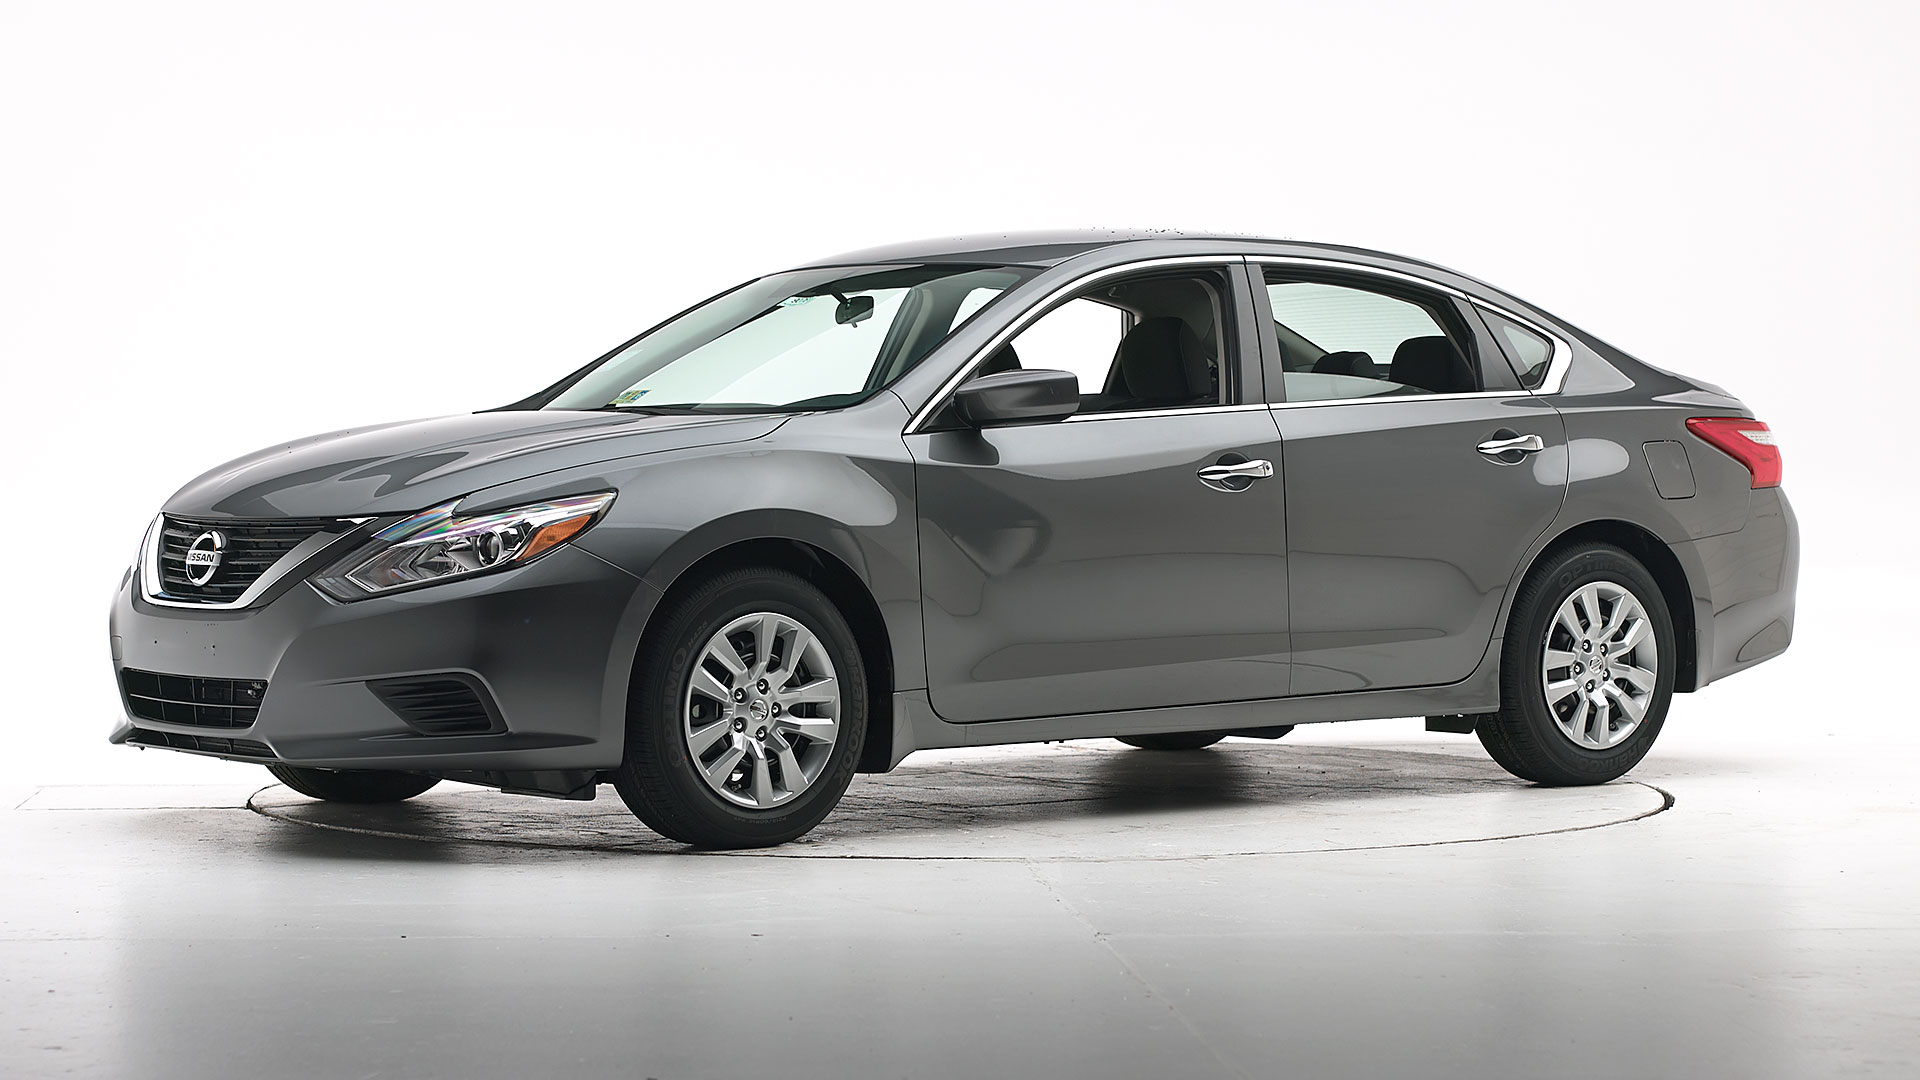 2016 Nissan Altima 4-door sedan